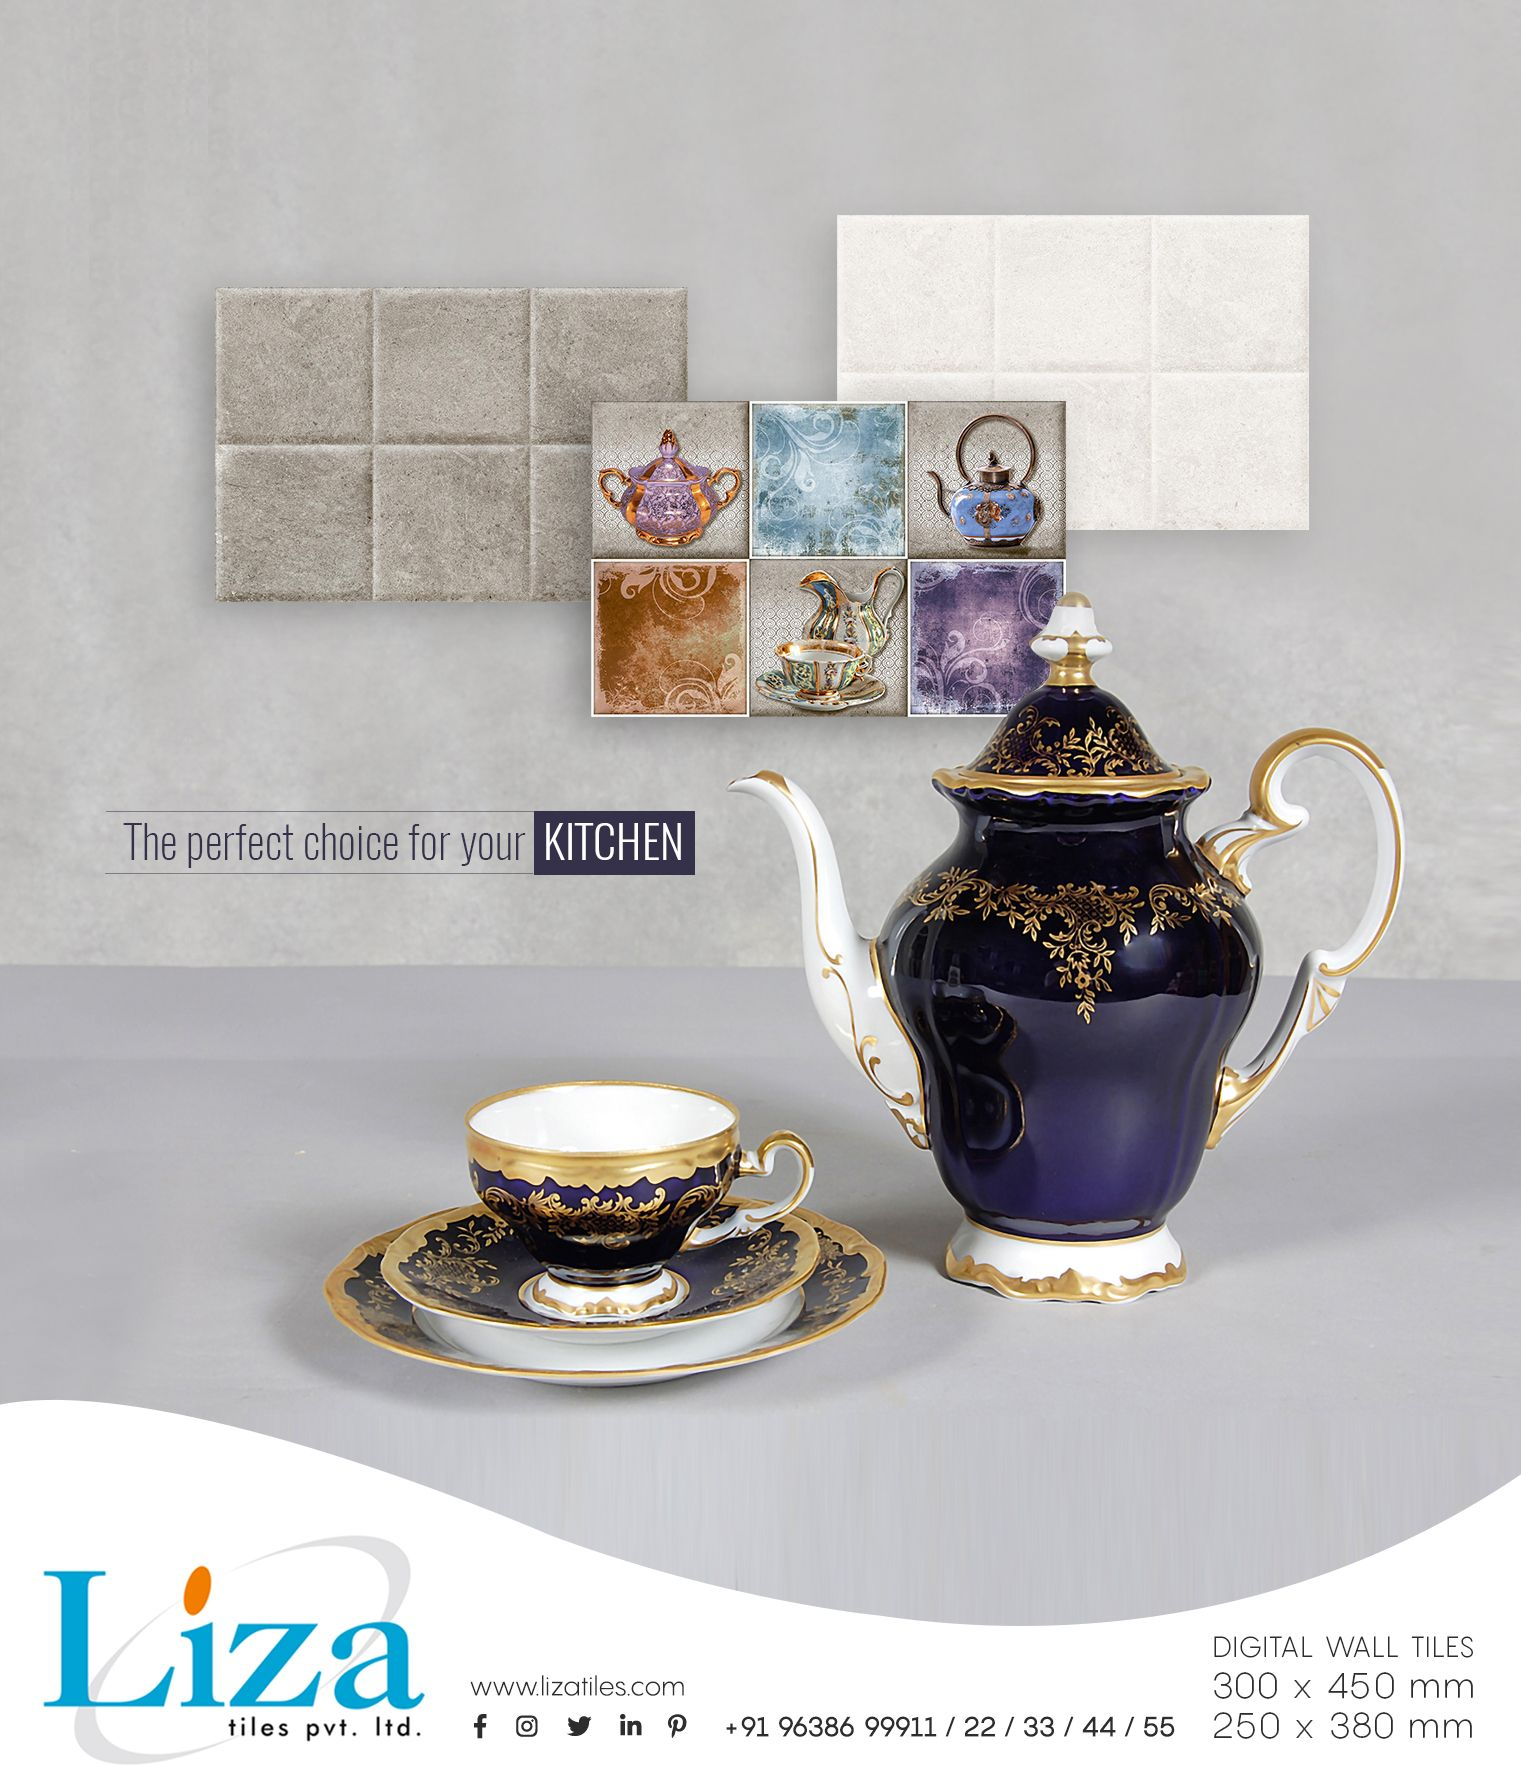 Lizza Tiles The Perfect Choice For Your Kitchen 300x450mm 250x380mm Digitalwalltiles Homedecor Lizadesigns Lizati With Images Tiles Wall Tiles Interior Tiles